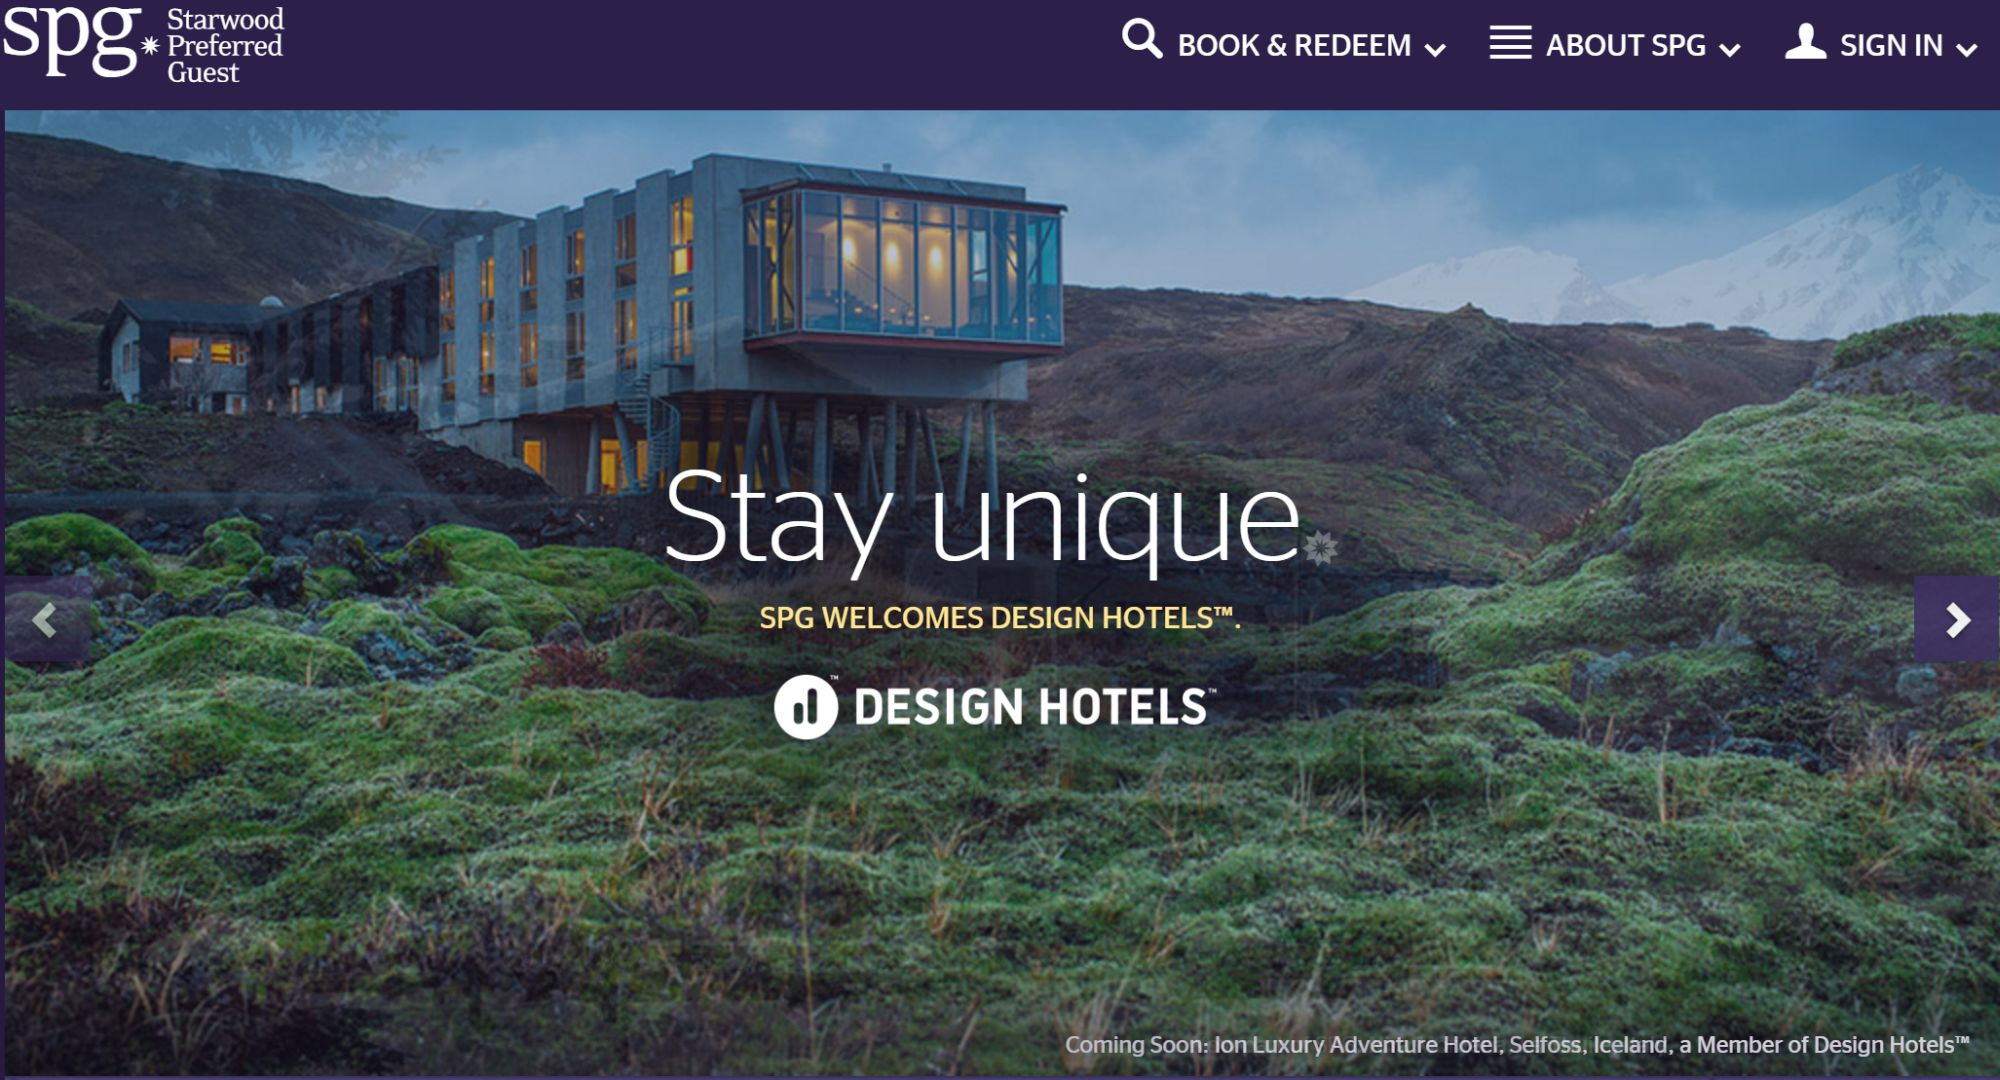 Win free SPG Starpoints with SPG Design Hotels Sweepstake